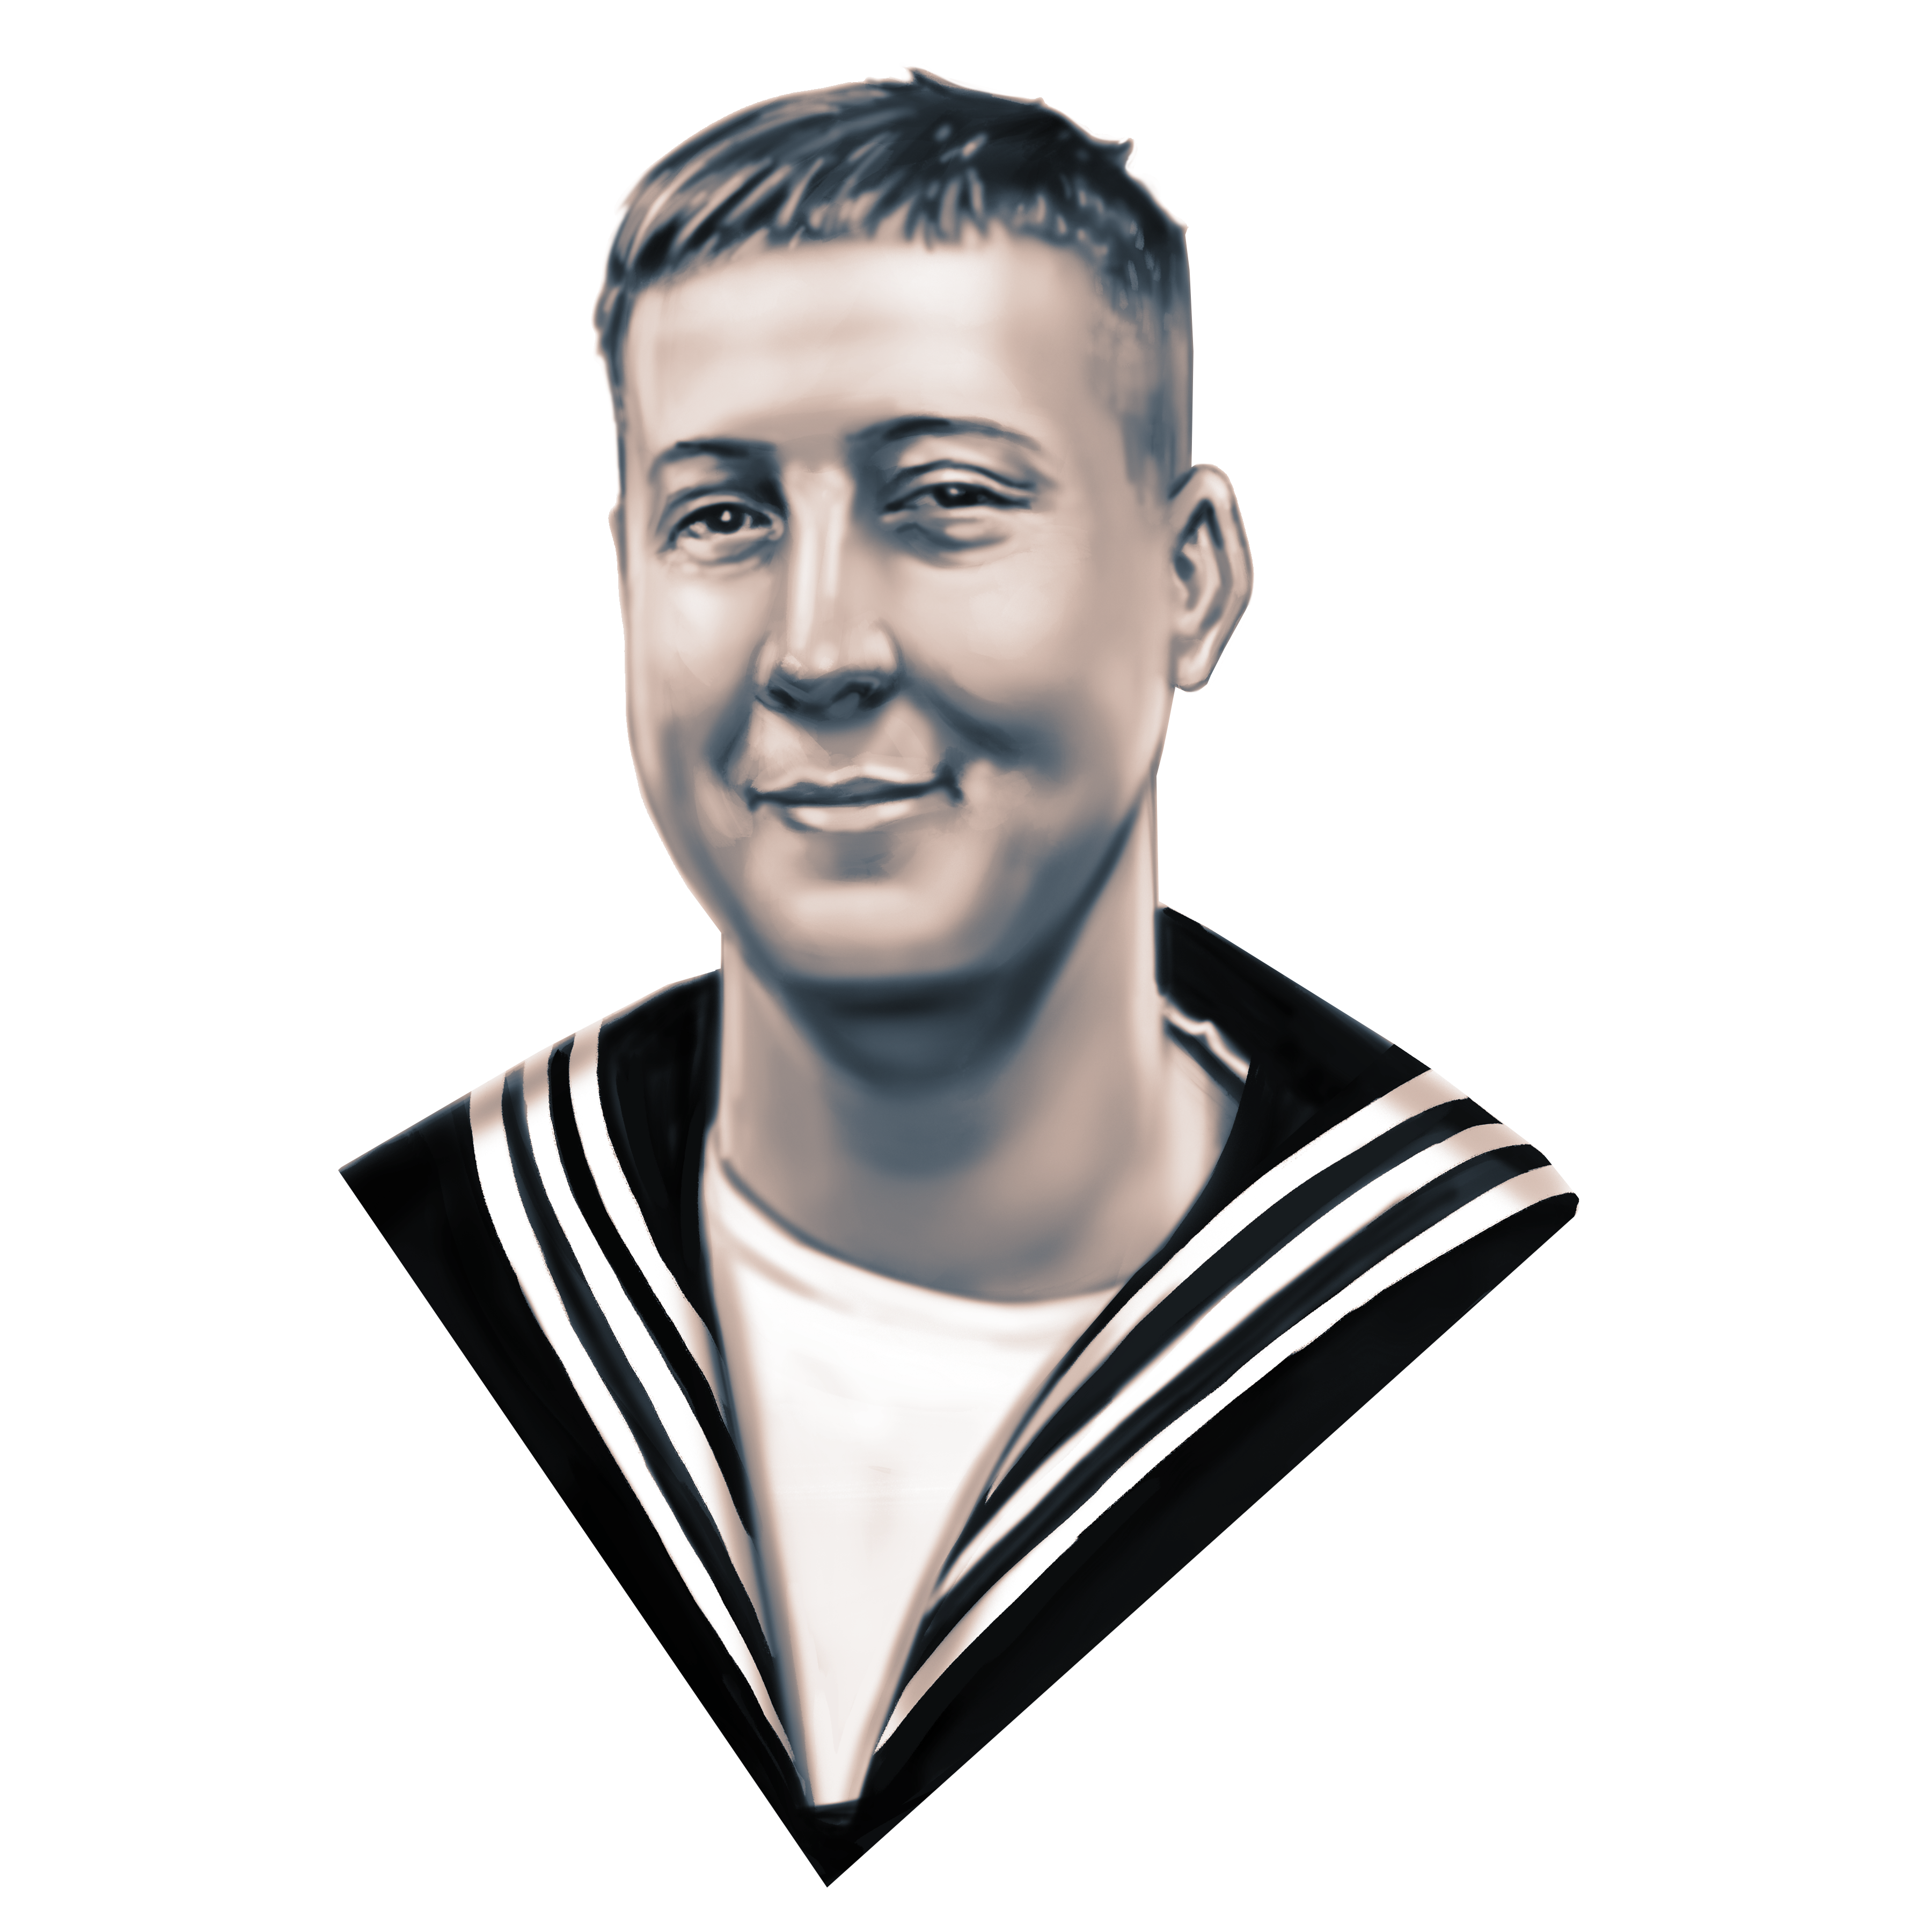 Petty Officer Third Class Logan Stephen Palmer, 23